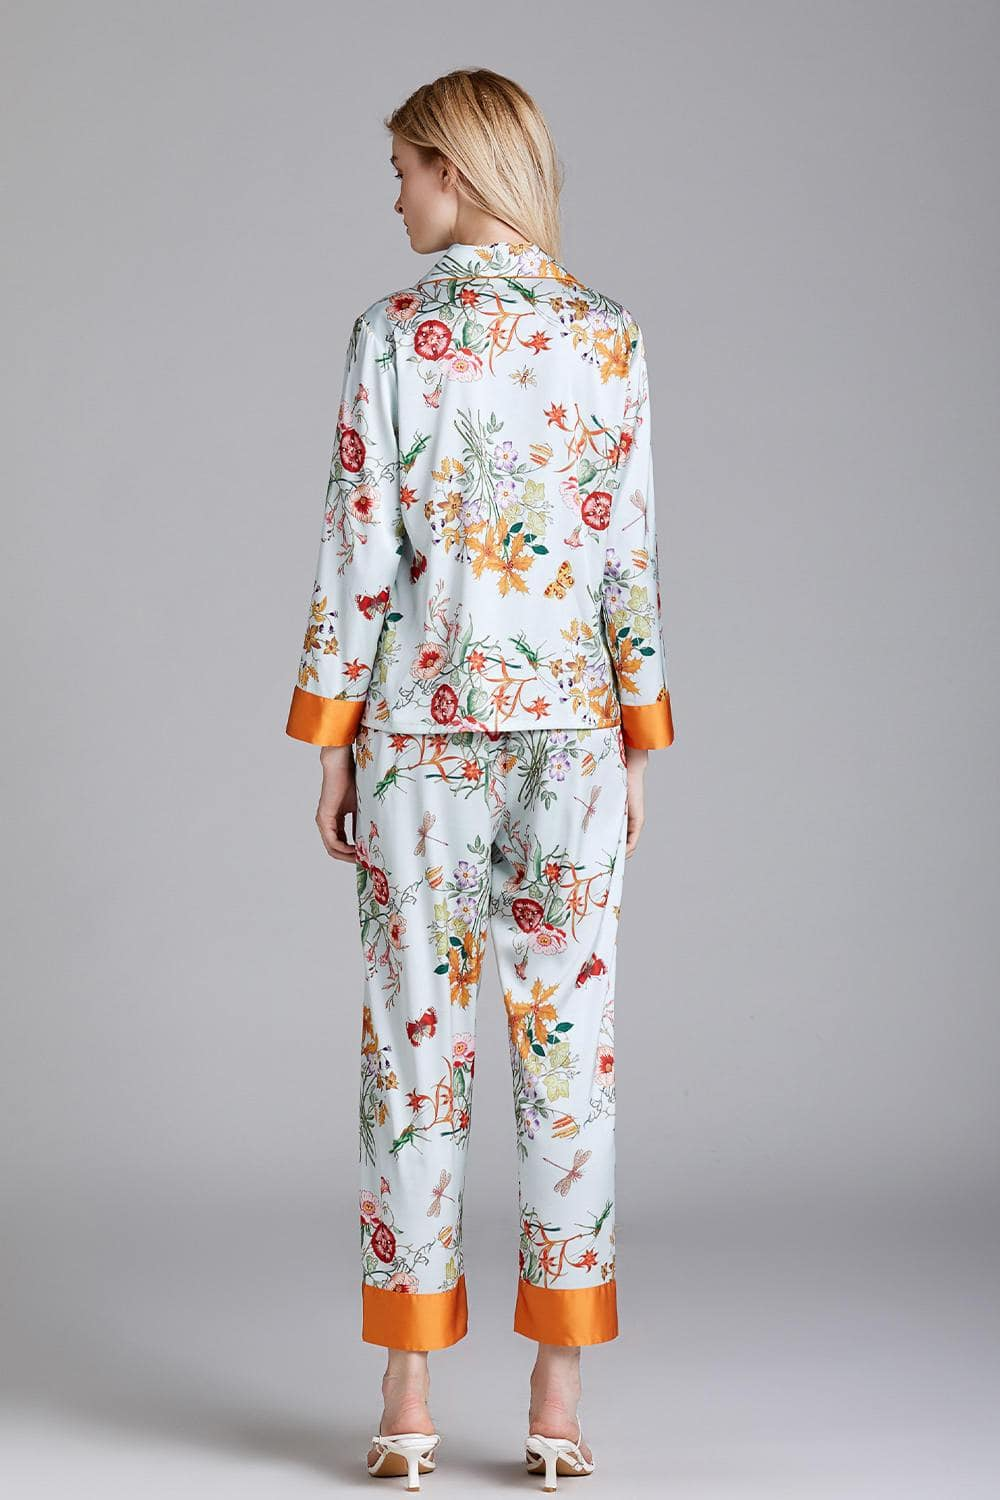 Satin Floral Print Long Sleeves Pajamas Set